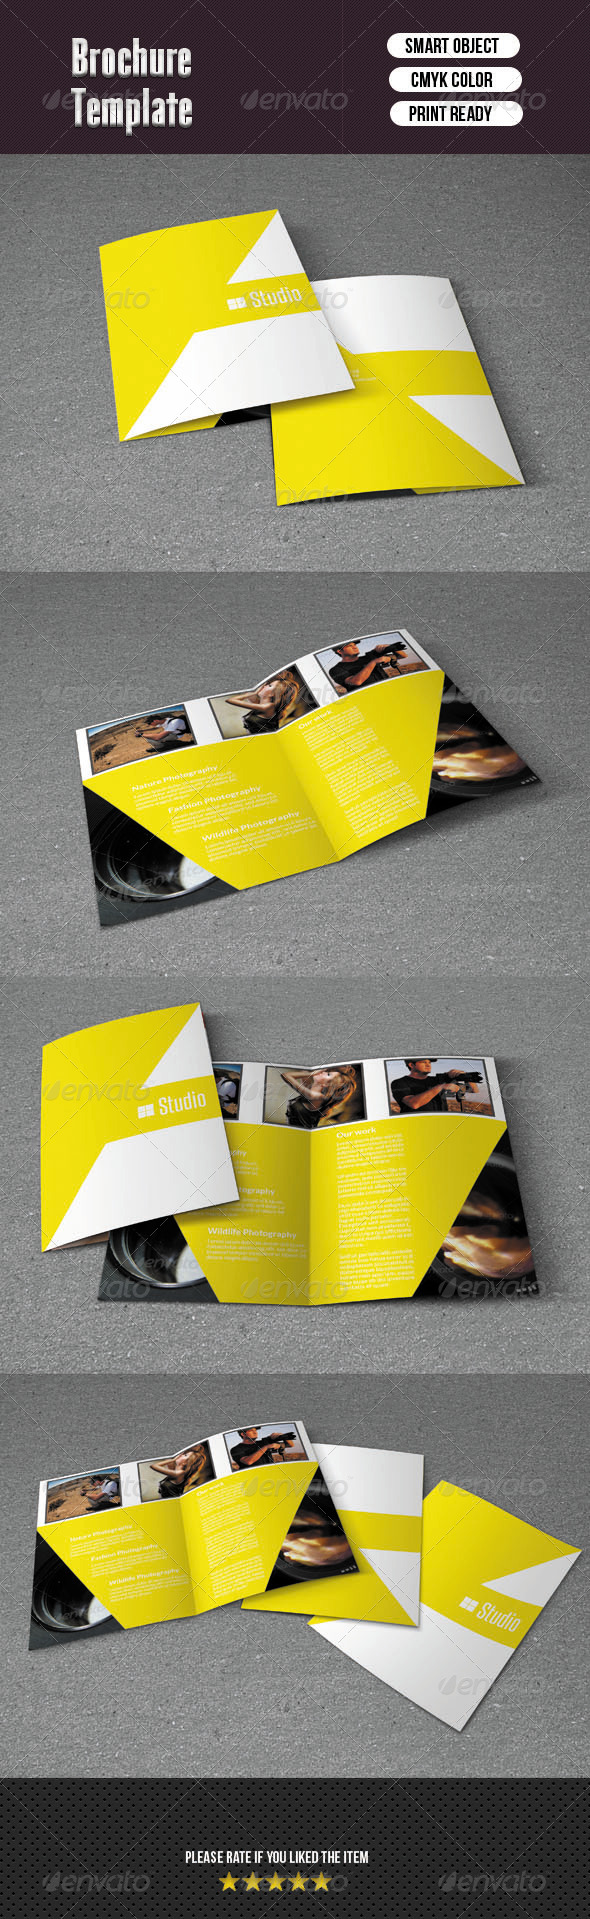 Bifold Brochure-Studio - Corporate Brochures